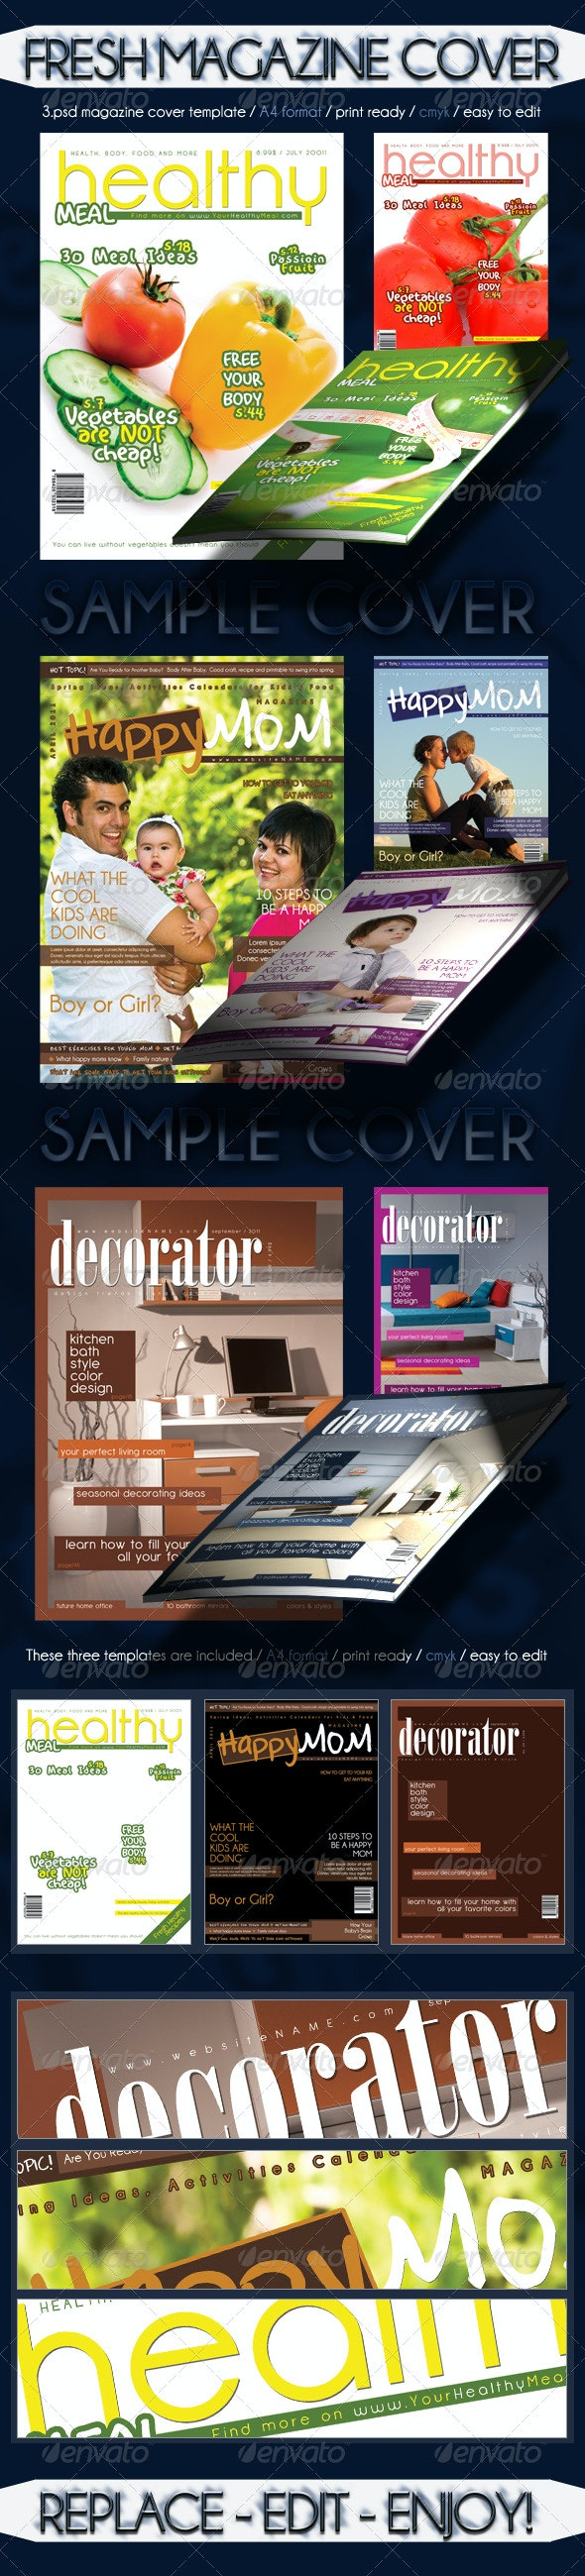 Fresh Magazine Cover Template - Magazines Print Templates